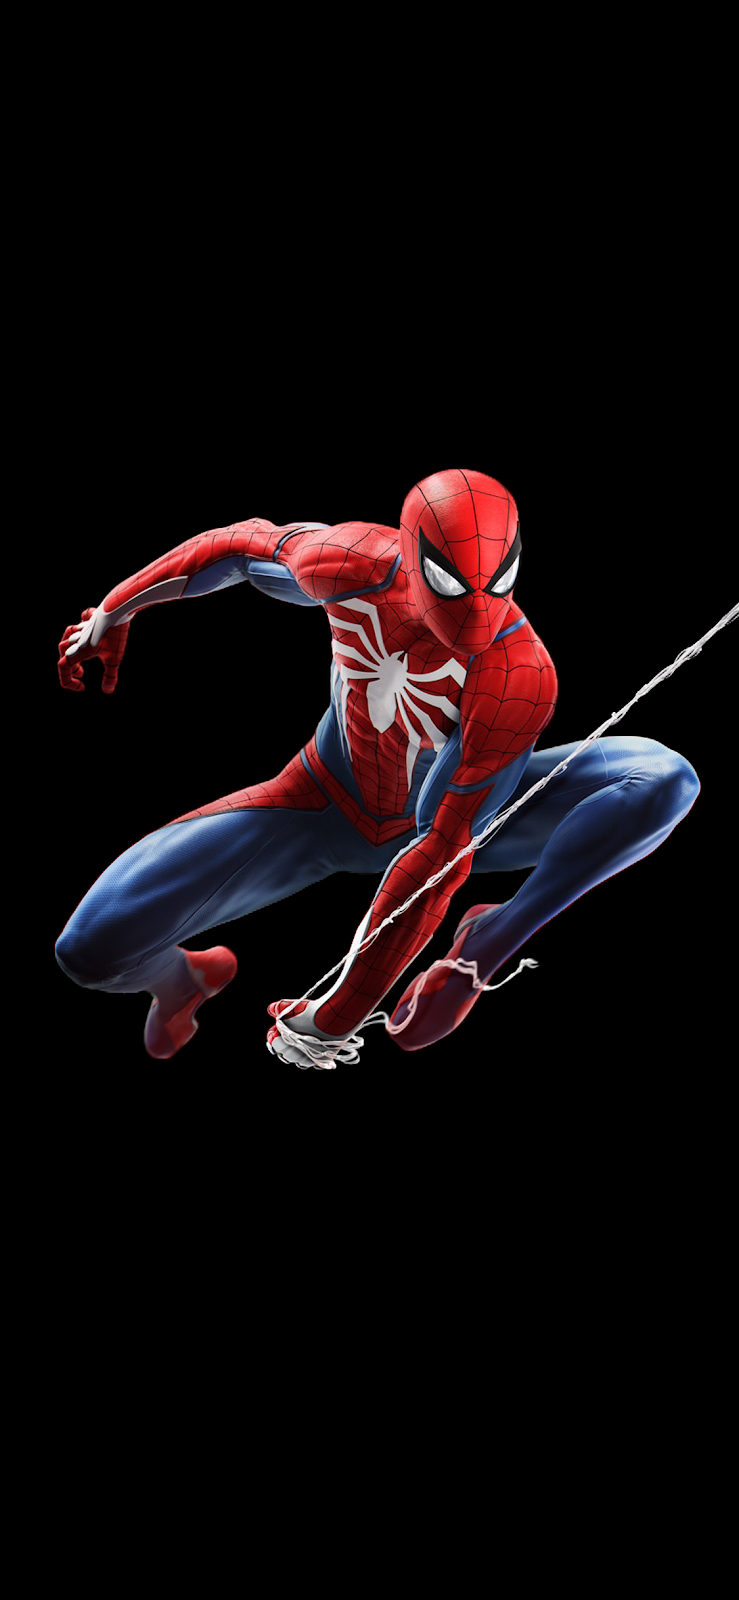 Into The Spider Verse Iphone Wallpaper Ipcwallpapers In 2020 Spiderman Superhero Wallpaper Cool Wallpapers For Phones